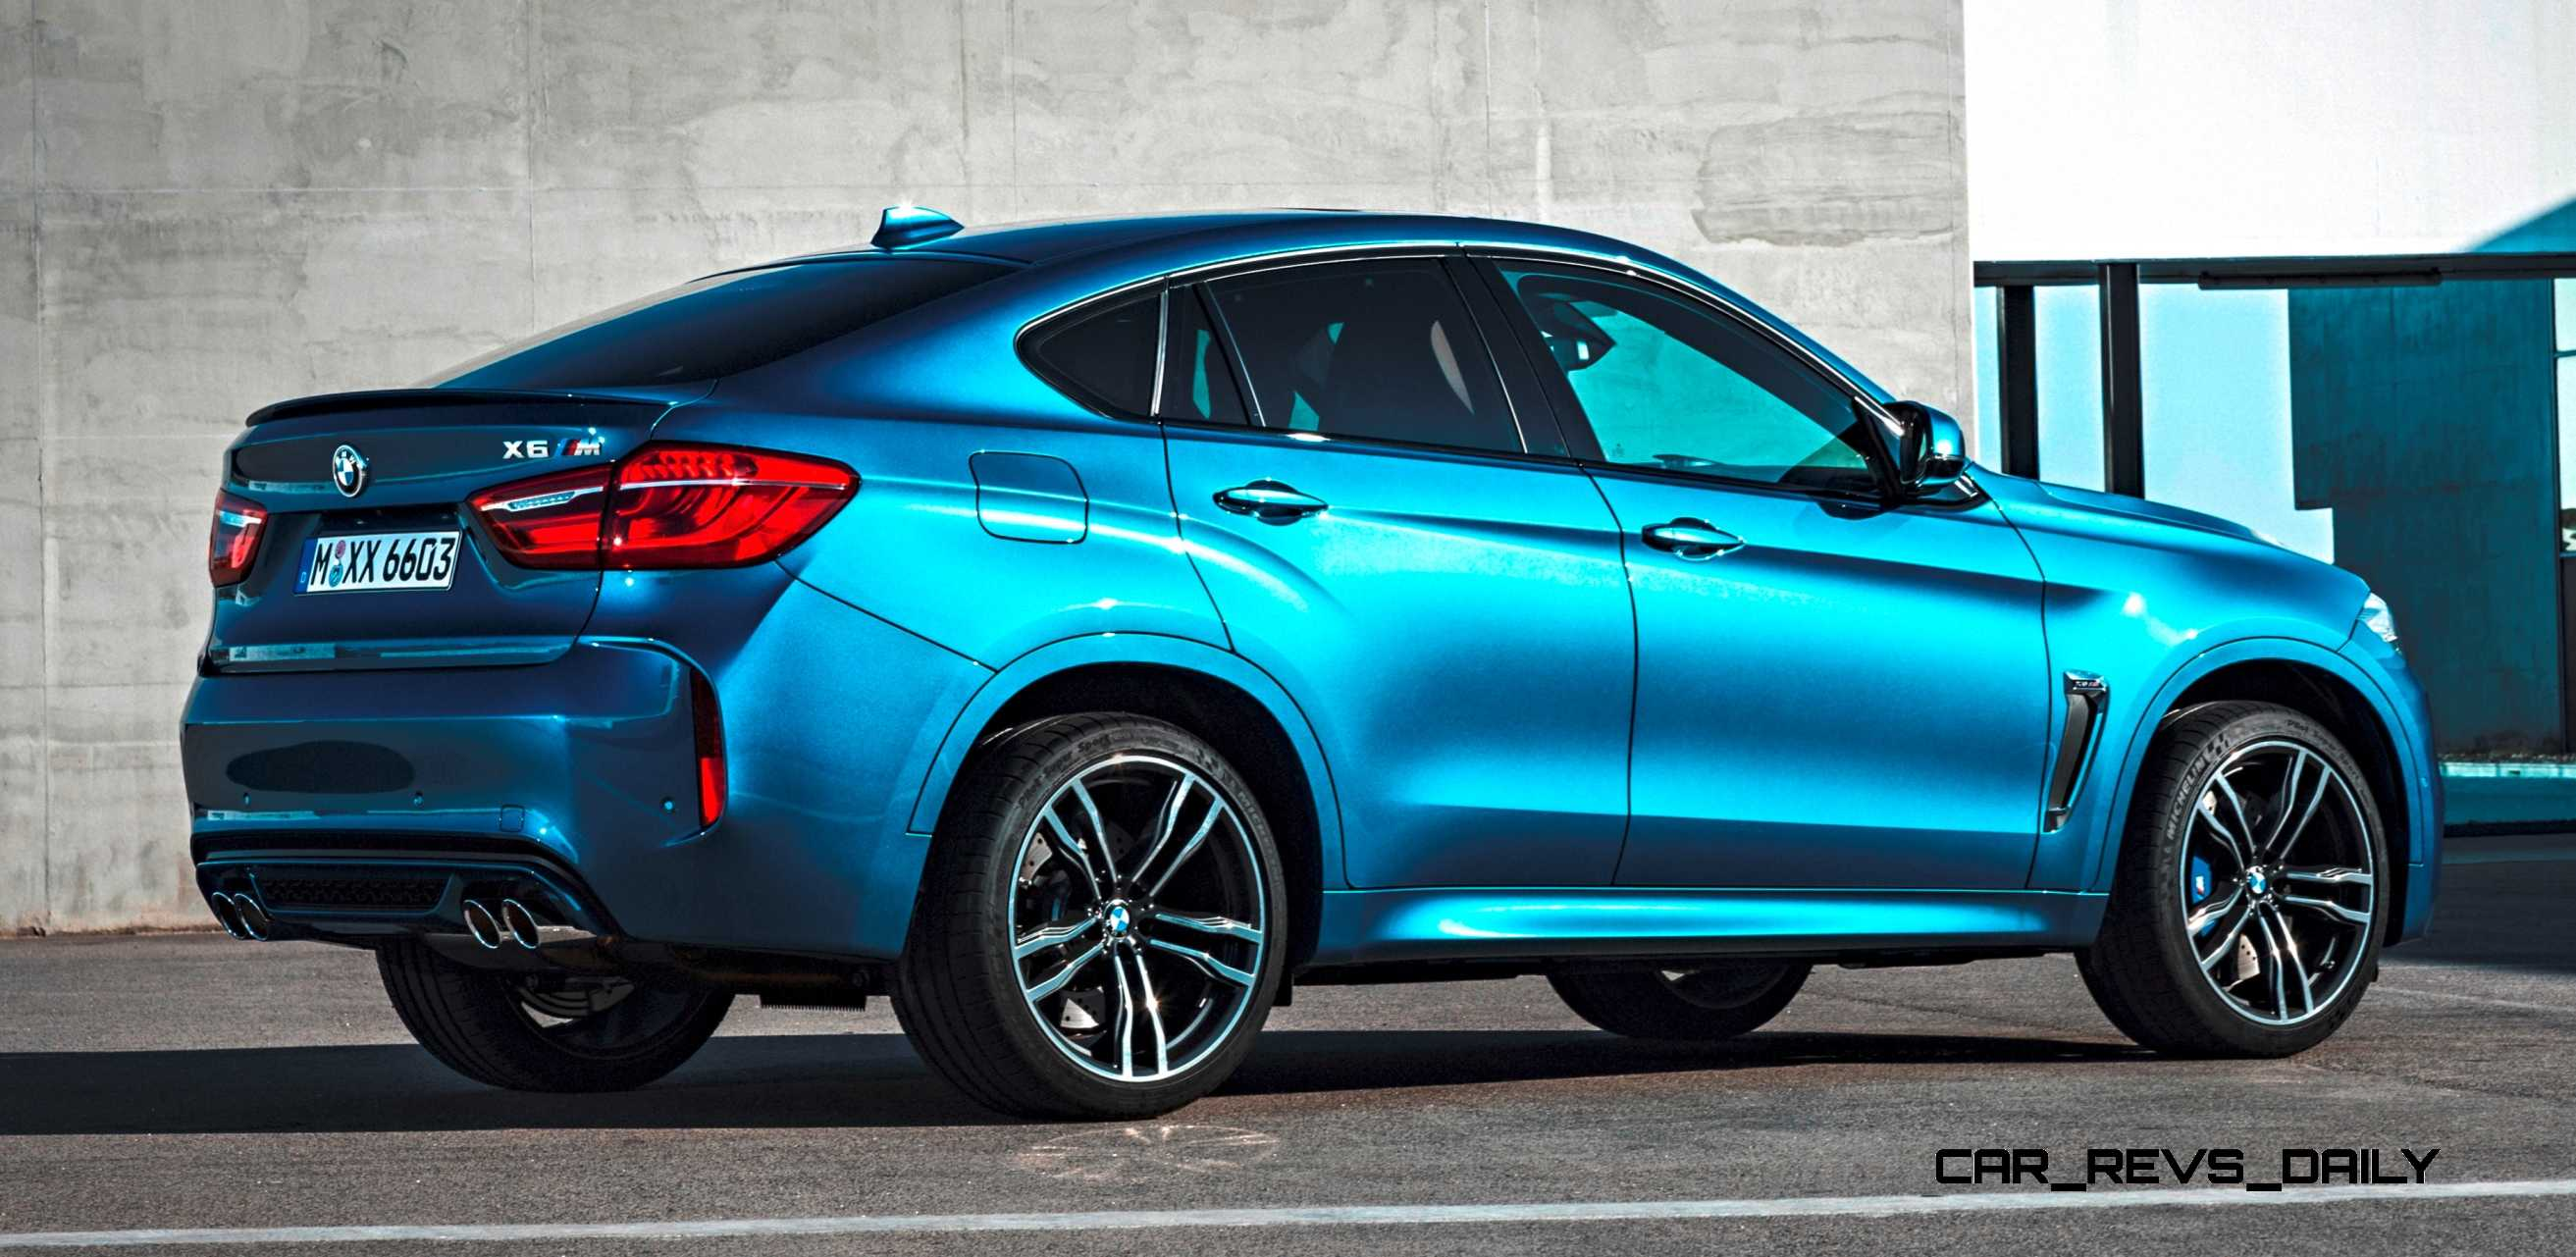 2015 BMW X6 M Is New Podium Race SUV From $103k